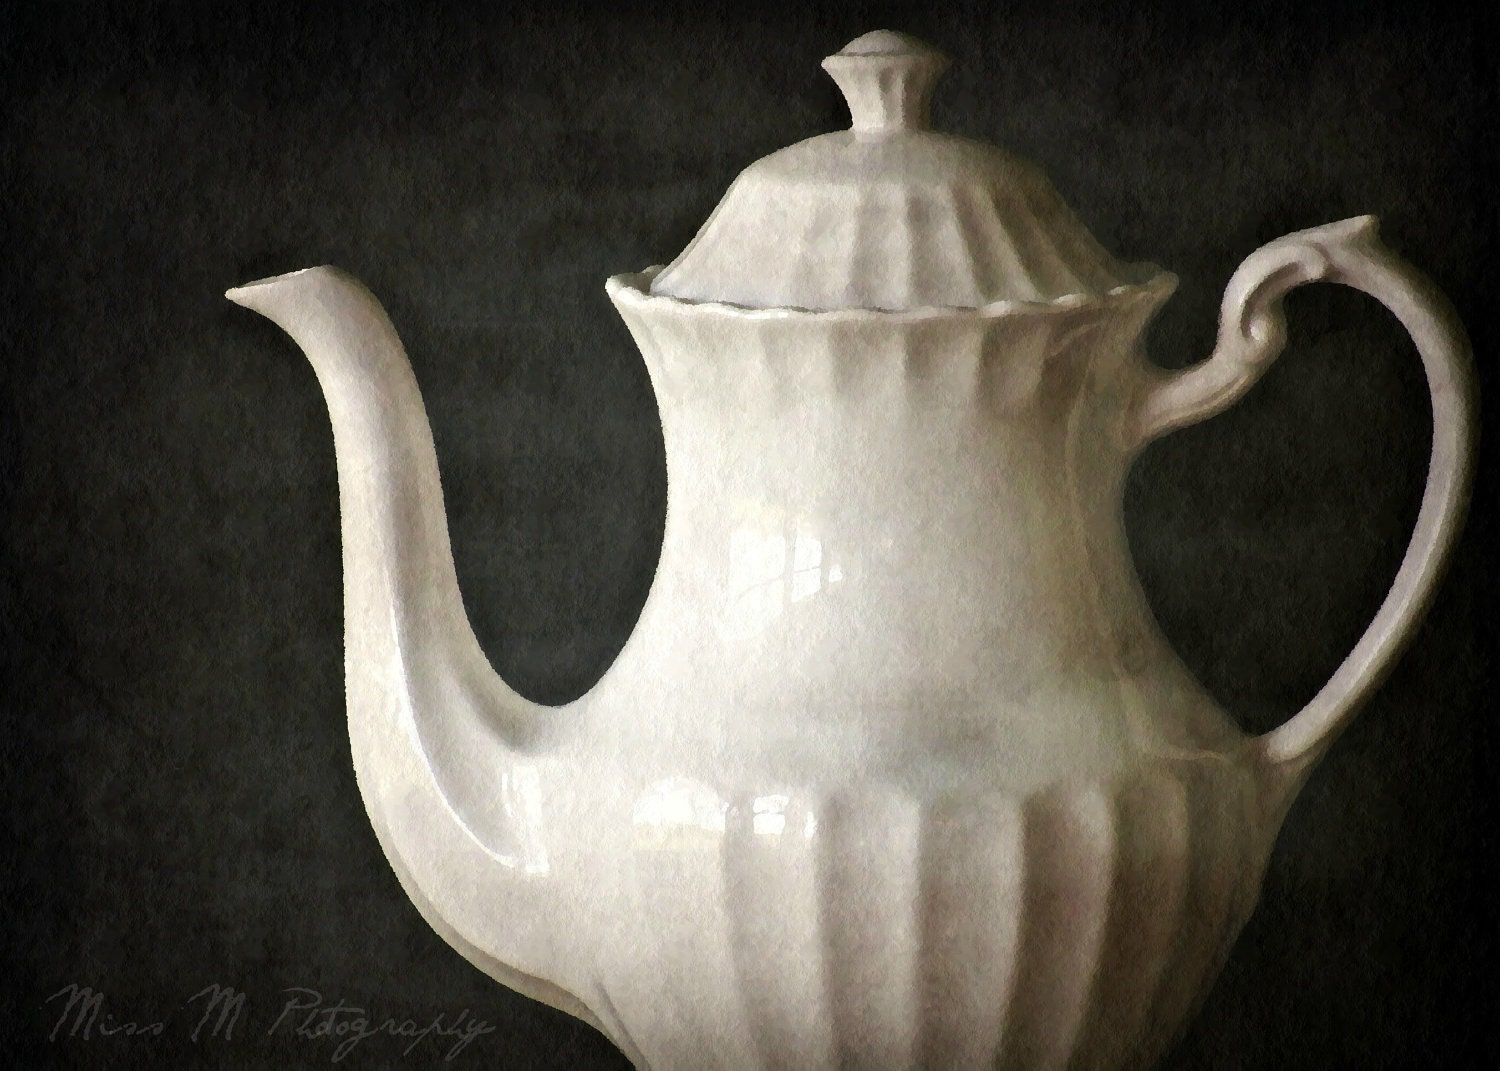 Cream, white, ivory, teapot, slate, gray, charcoal, kitchen, home decor, fine art photograph, 5x7 print, metallic finish - MissMPhotography